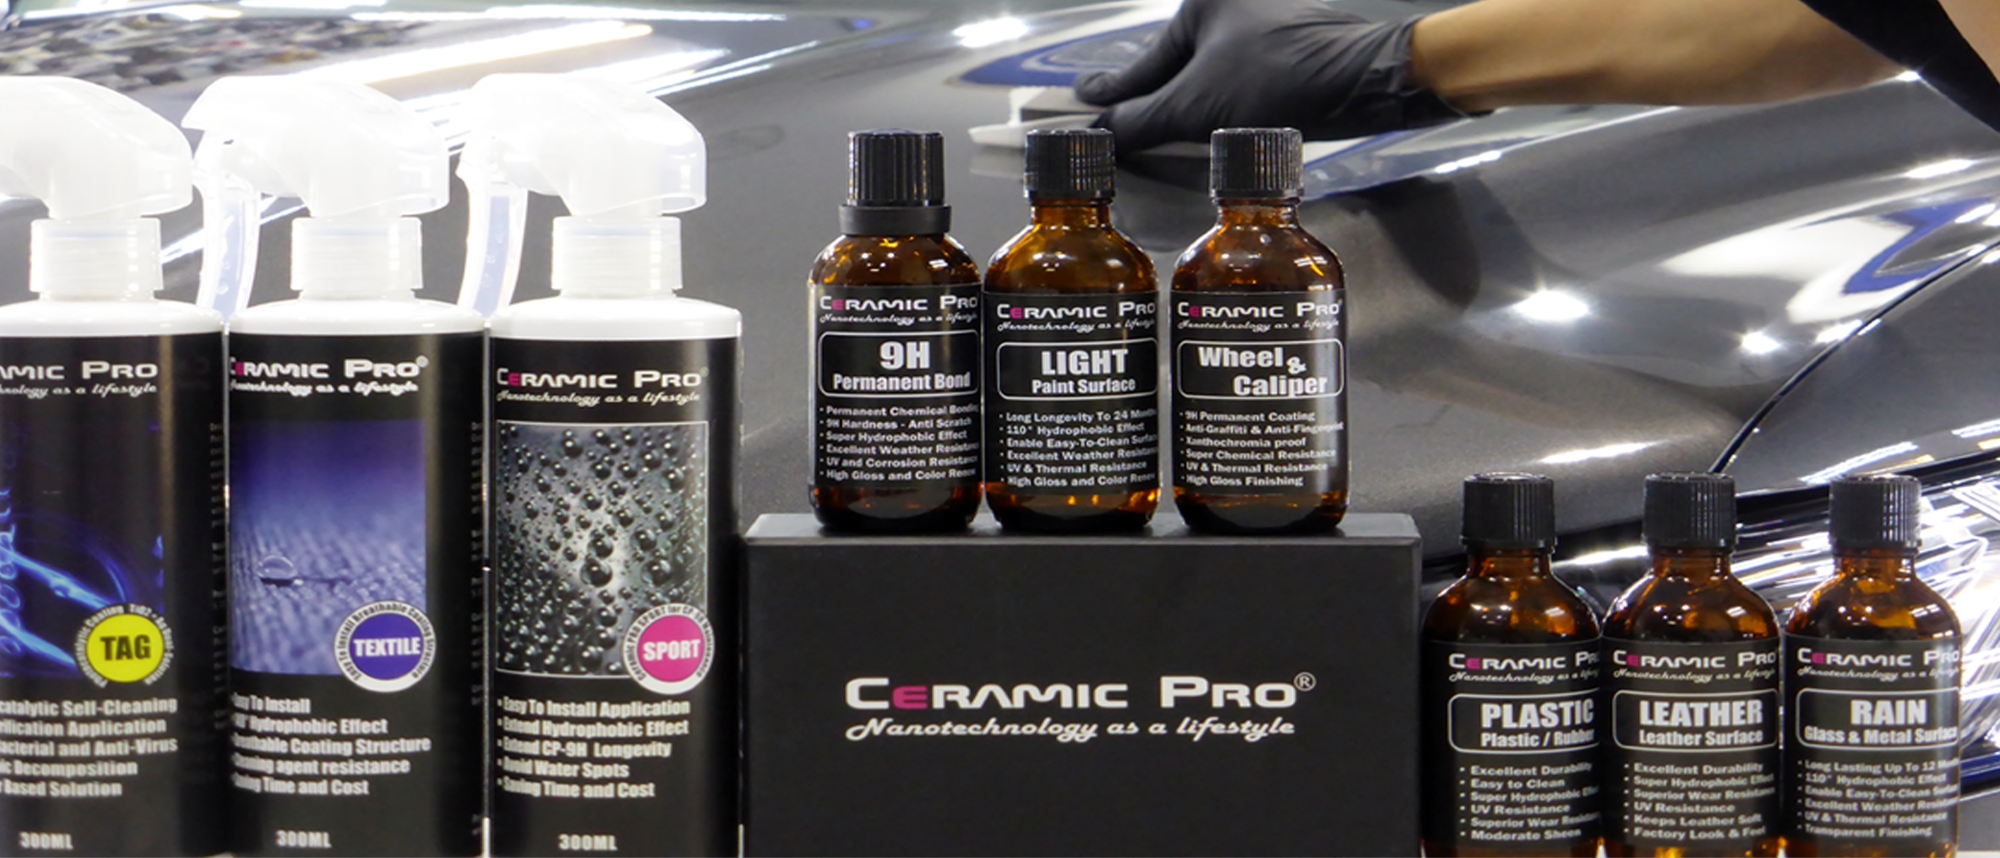 Ceramic Pro Exterior Packages Ace Gt Trained And Certified Ceramic Pro Applicator